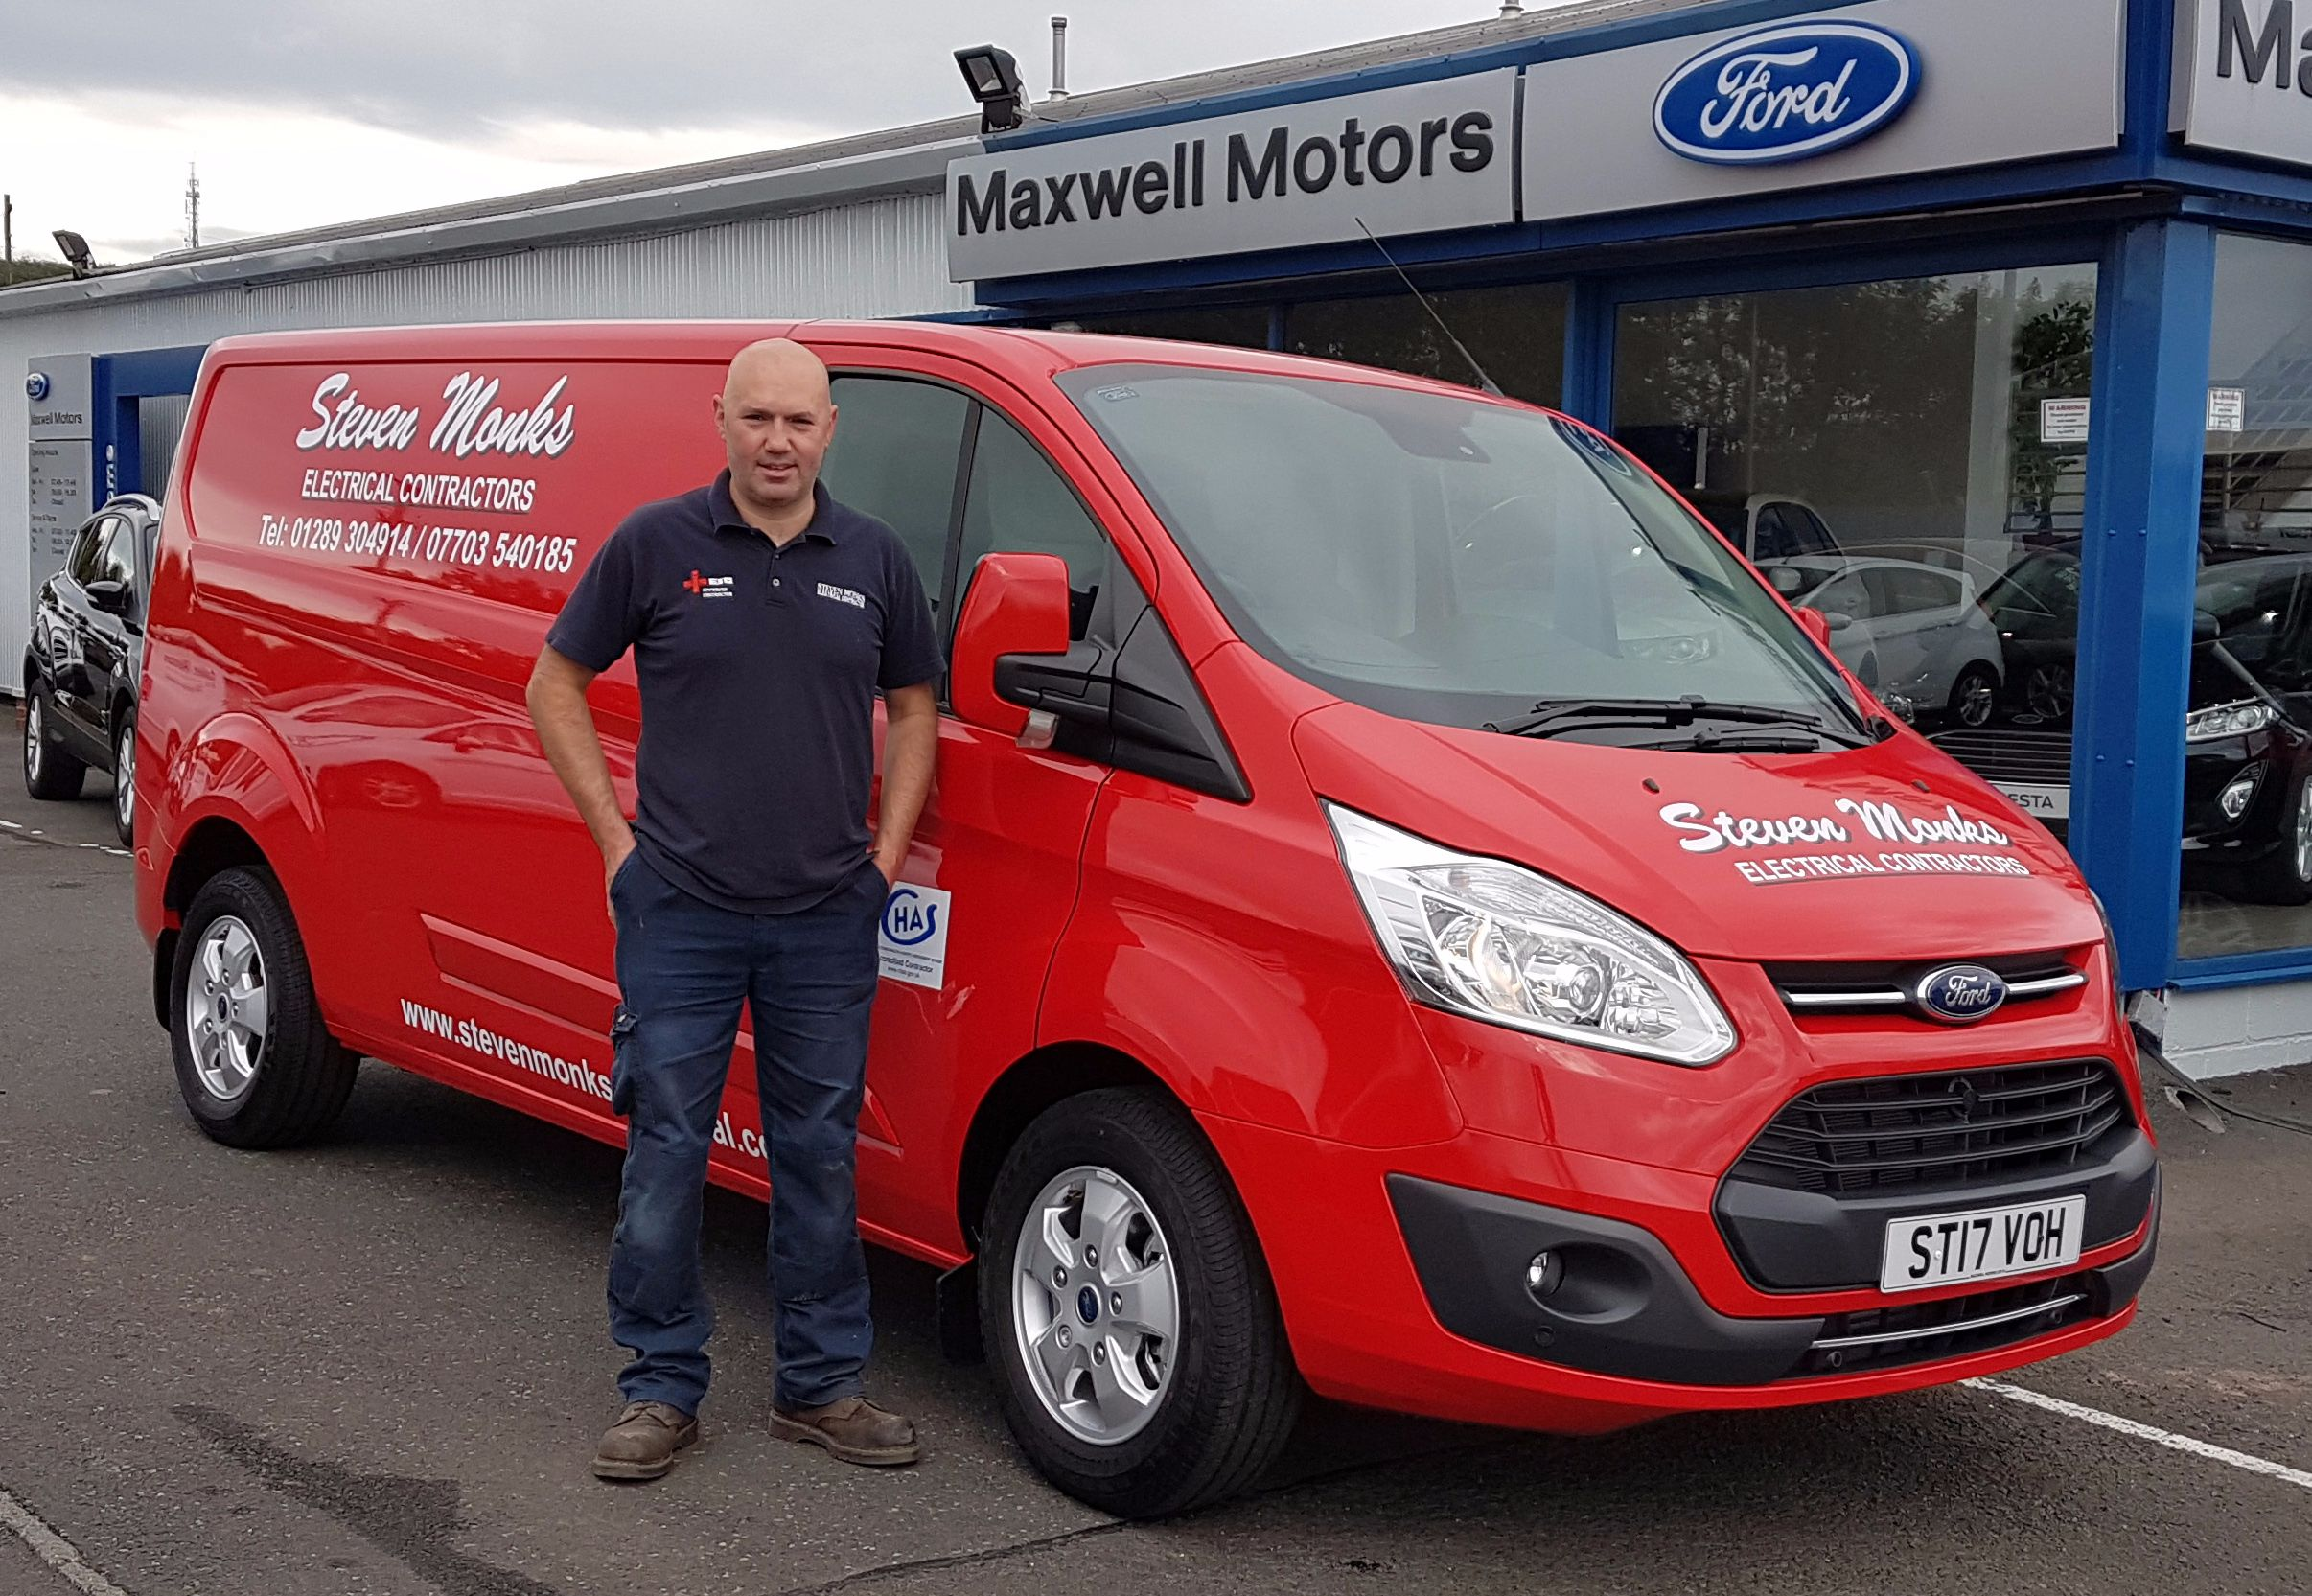 LOCAL ELECTRICAL CONTRACTOR UPGRADES FLEET VEHICLE...